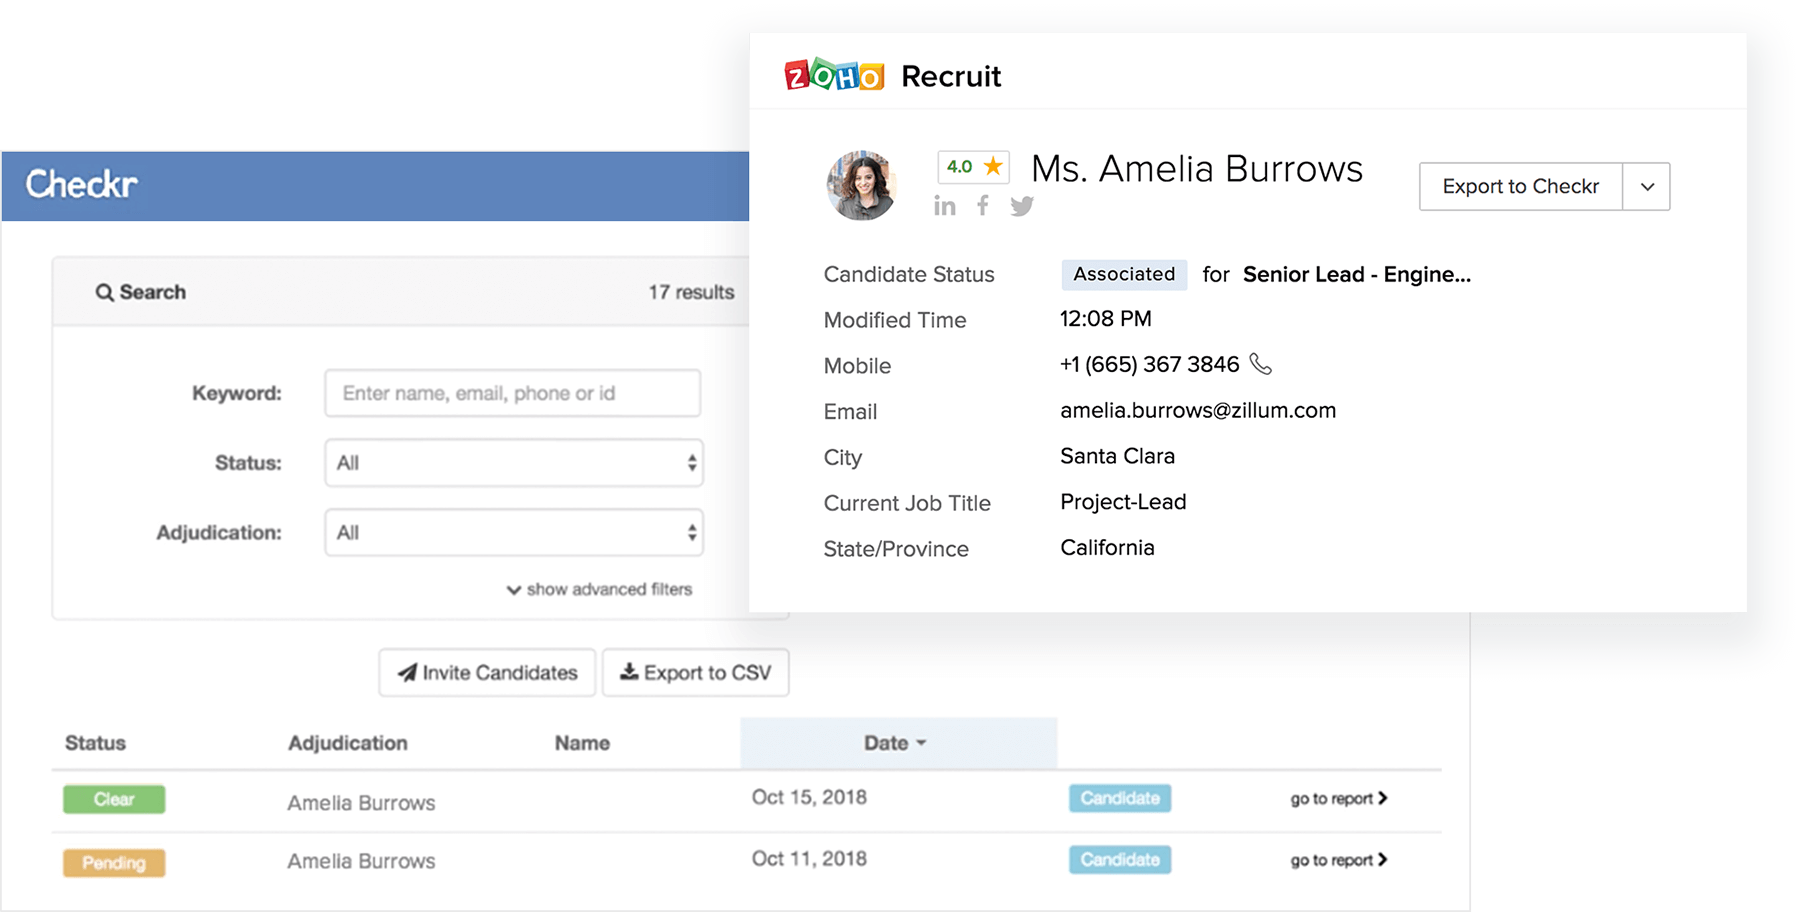 Background Check - Candidate Management - Zoho Recruit